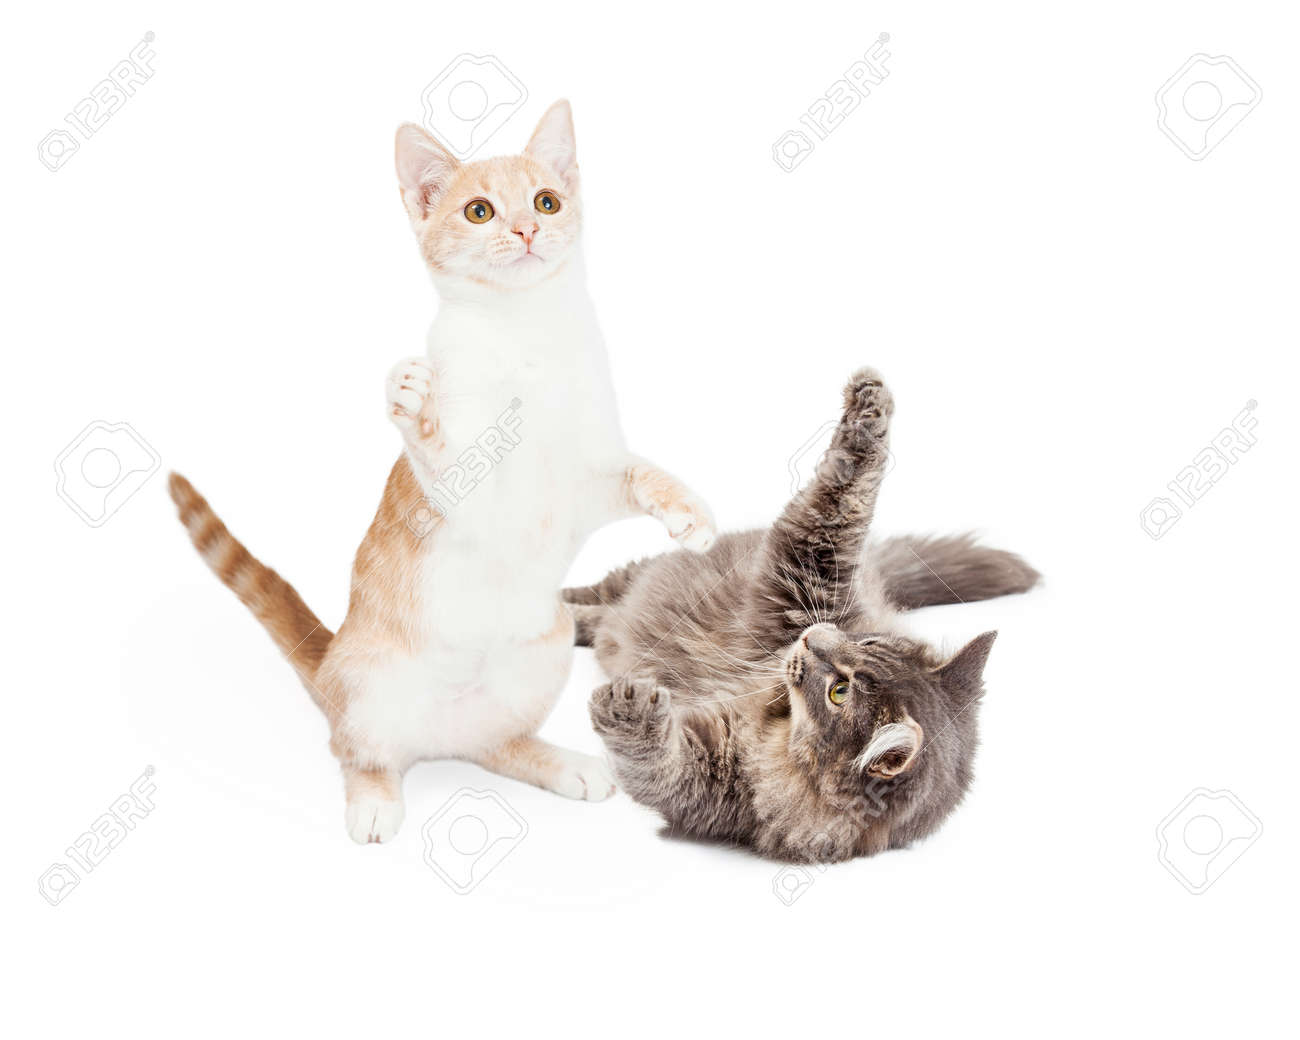 two playful little kittens rolling around together stock photo